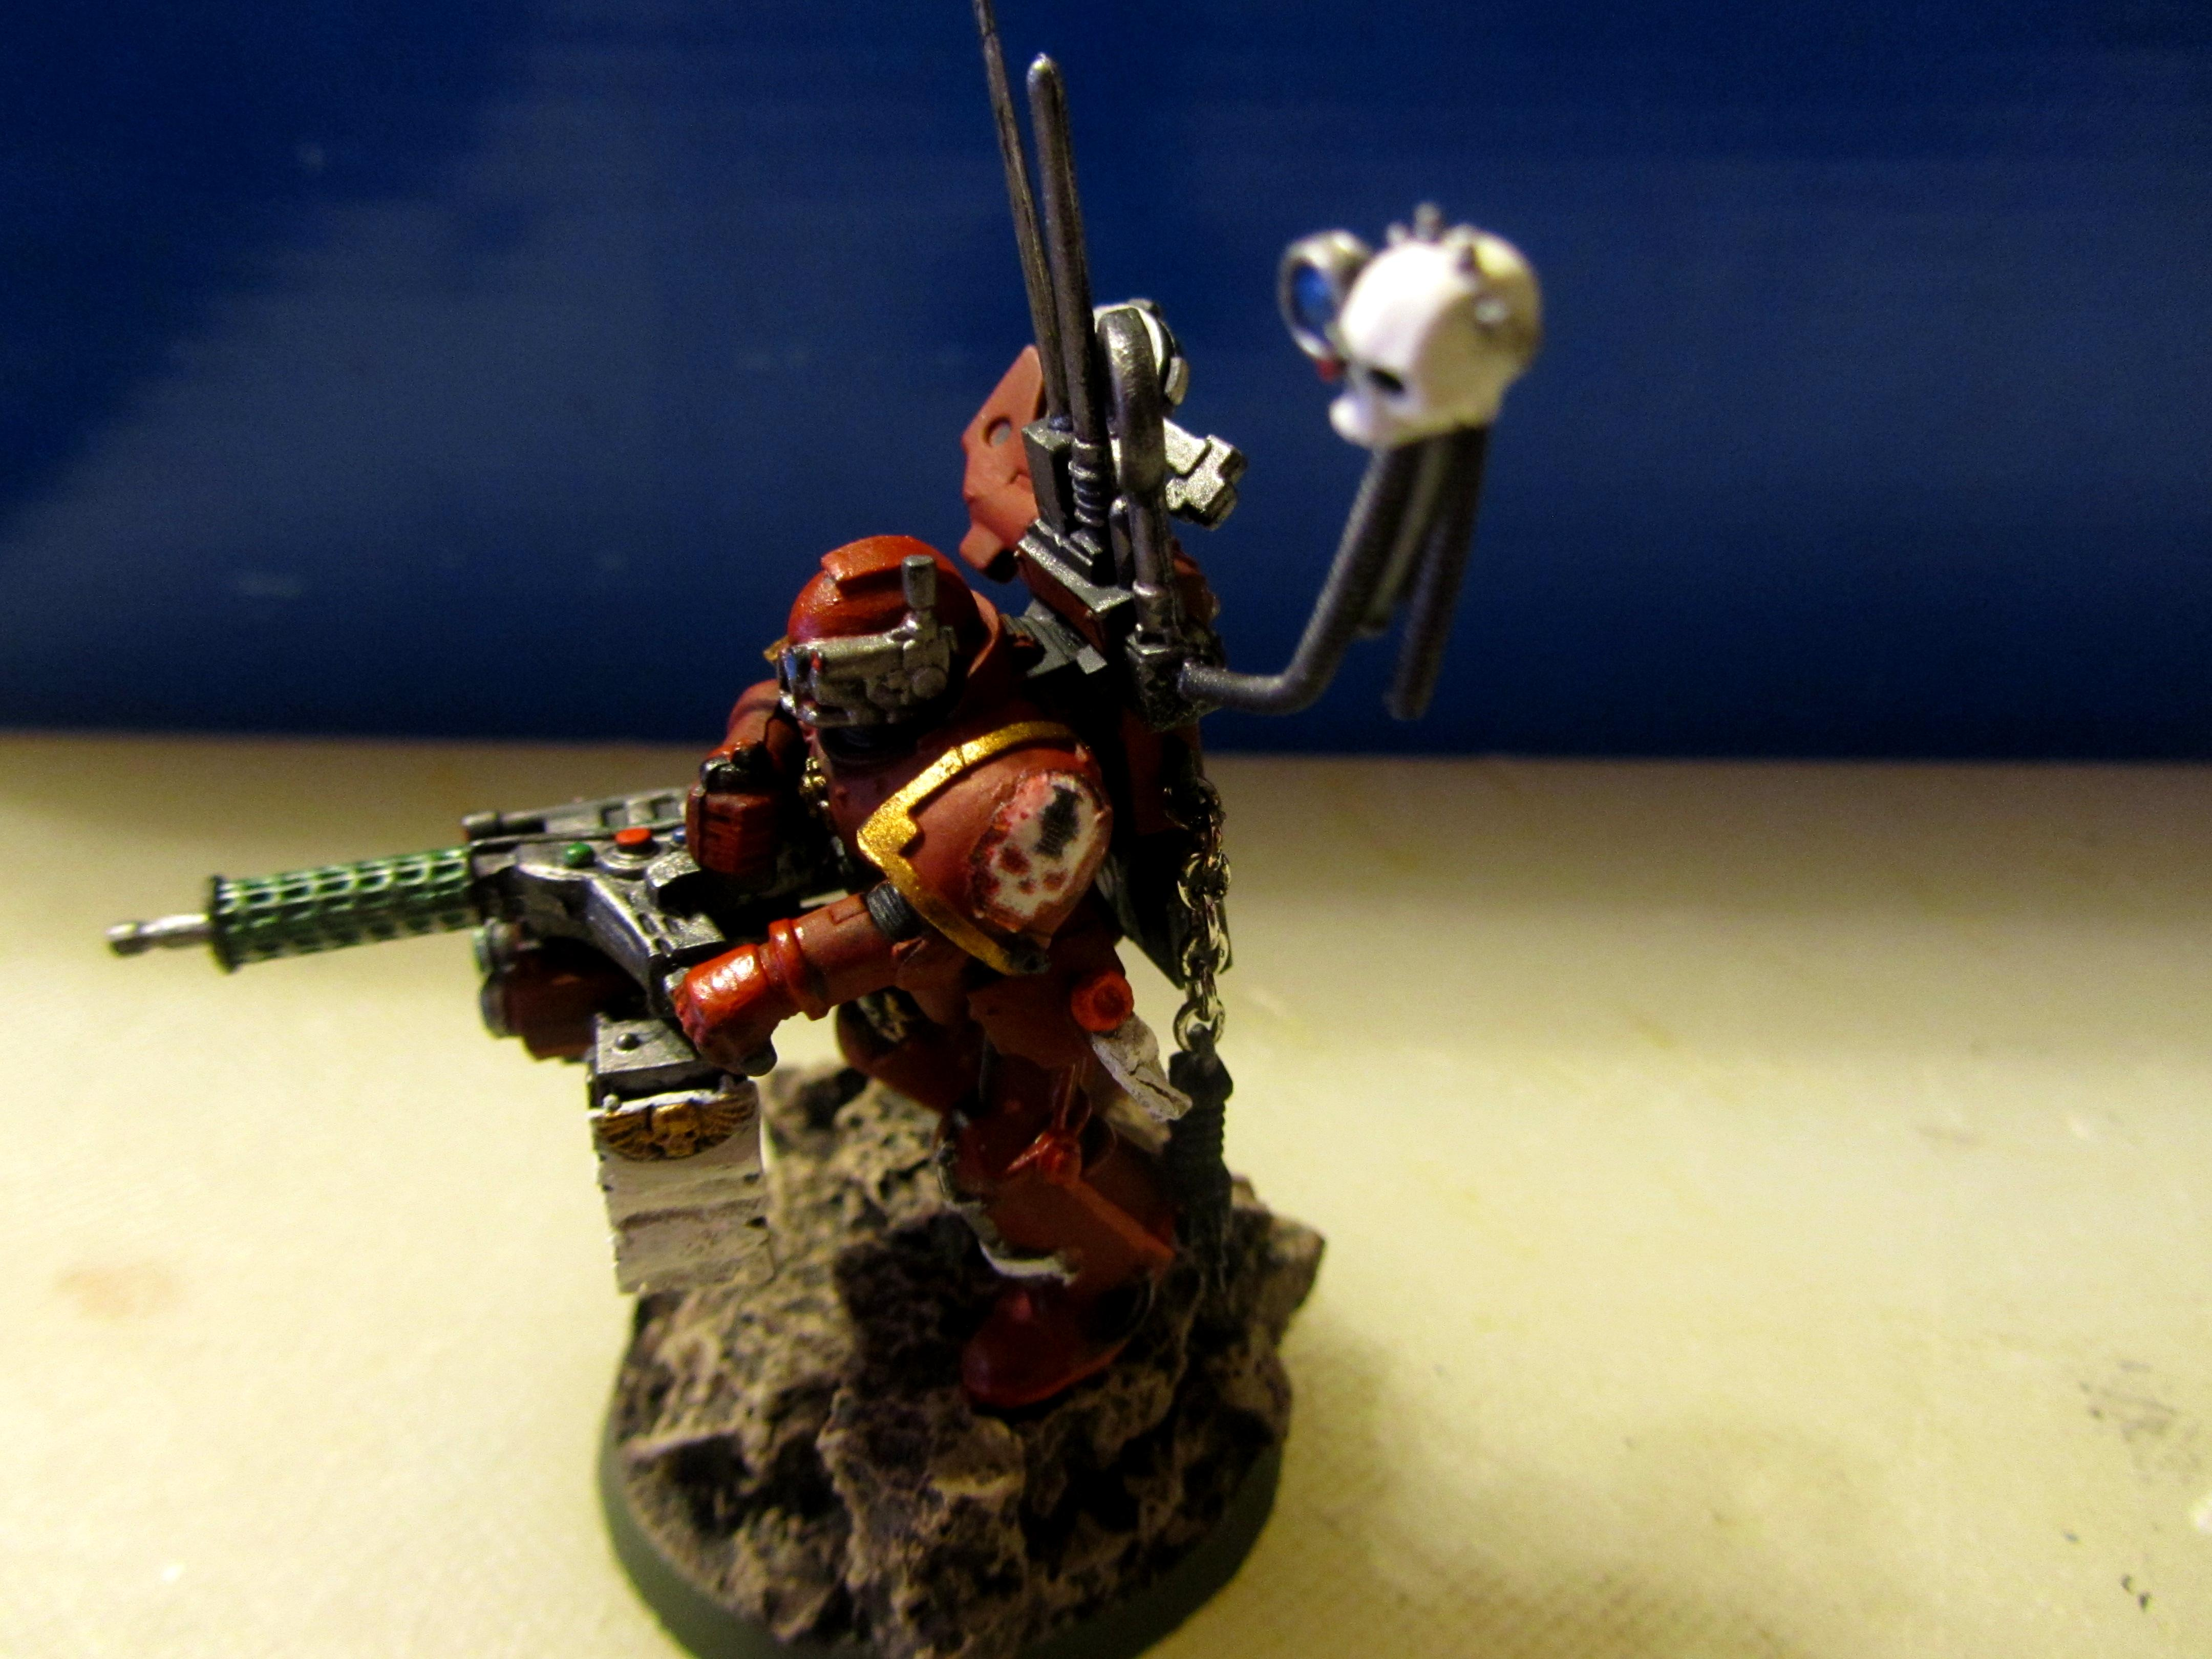 Beamer, Conversion, Forge, Inquisition, Master, Red Hunters, Space Marines, Techmarine, Warhammer 40,000, Warhammer Fantasy